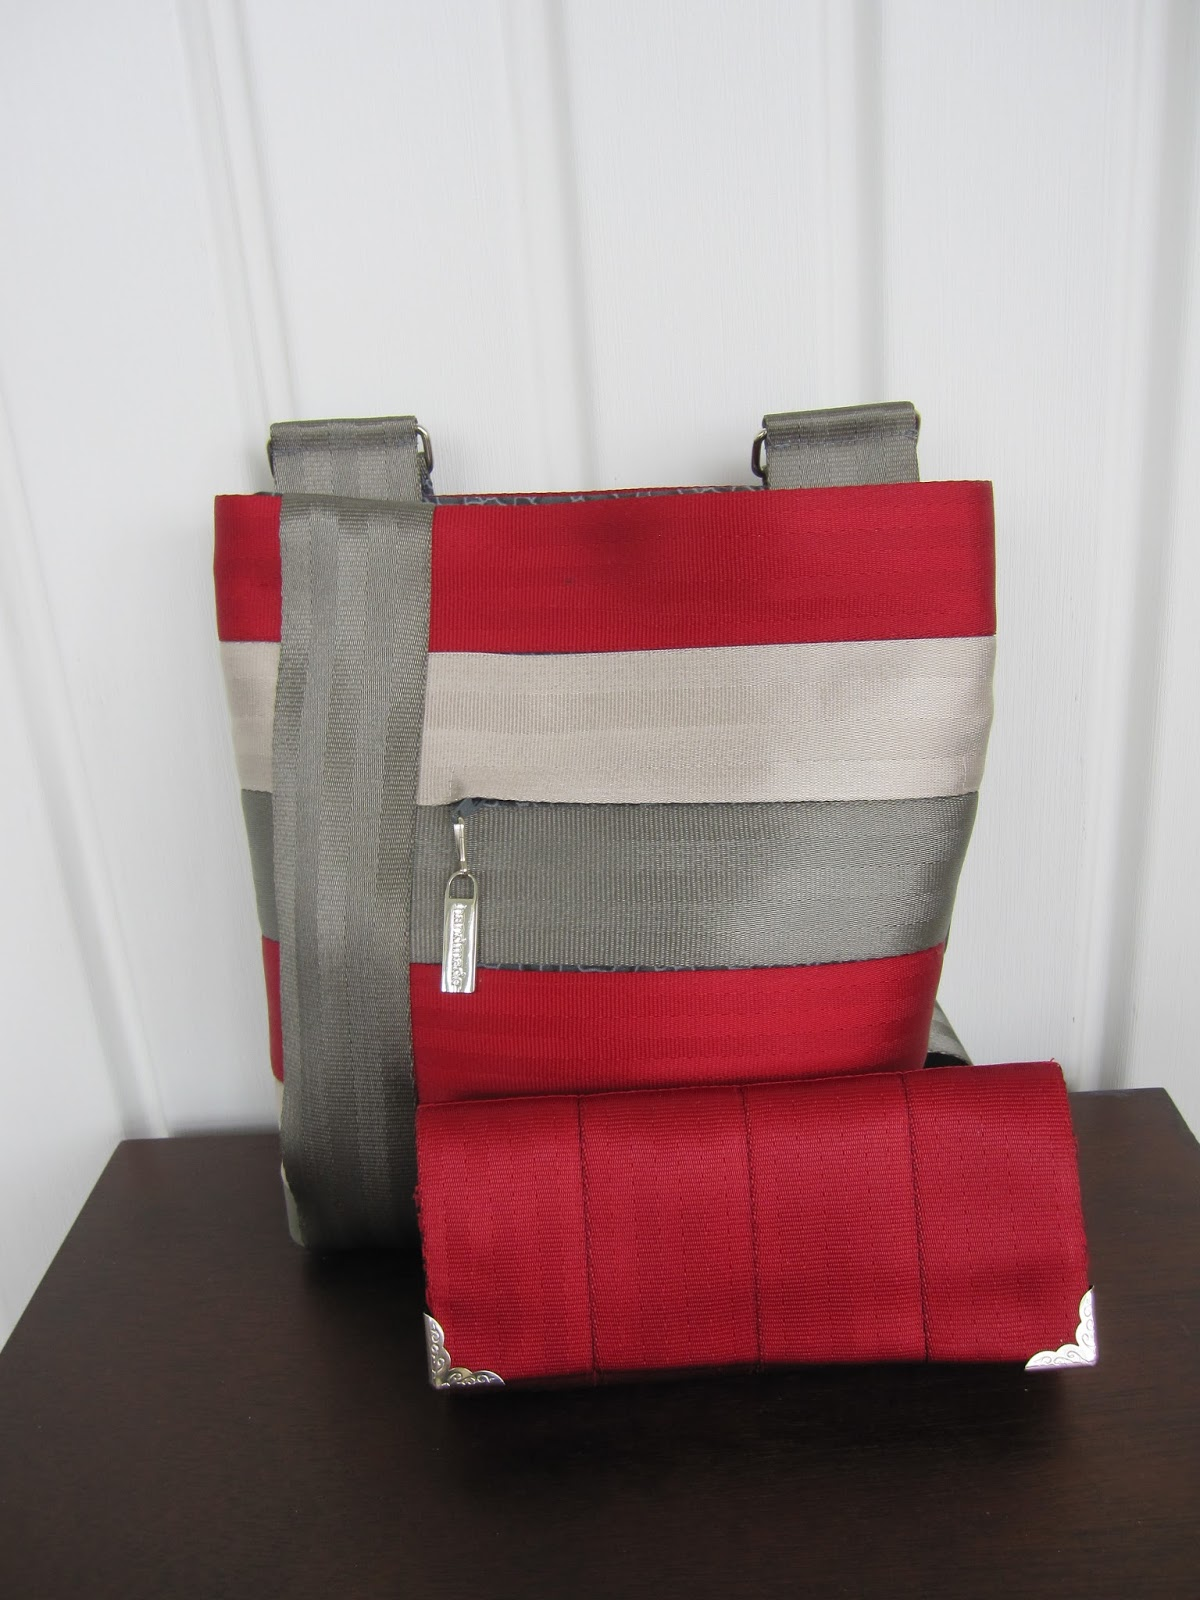 shades of BOLD : The Seat Belt Series: The Crossover Bag and